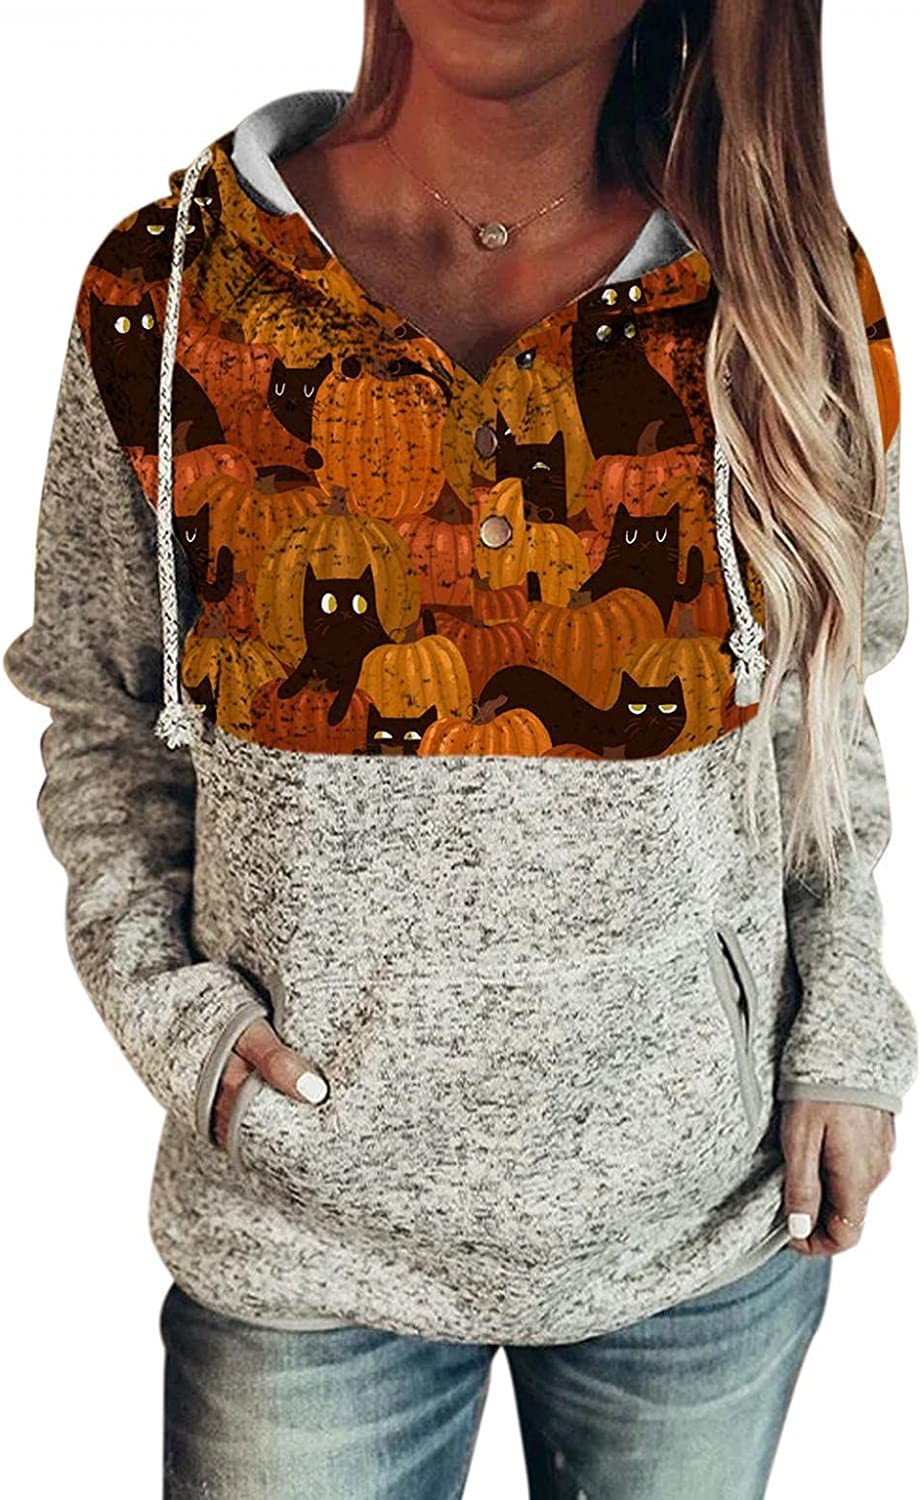 Halloween Sweatshirts for Women Casual Drawstring Cute Cat Printed Long Sleeve Hoodies Sweaters Pullover Top with Button